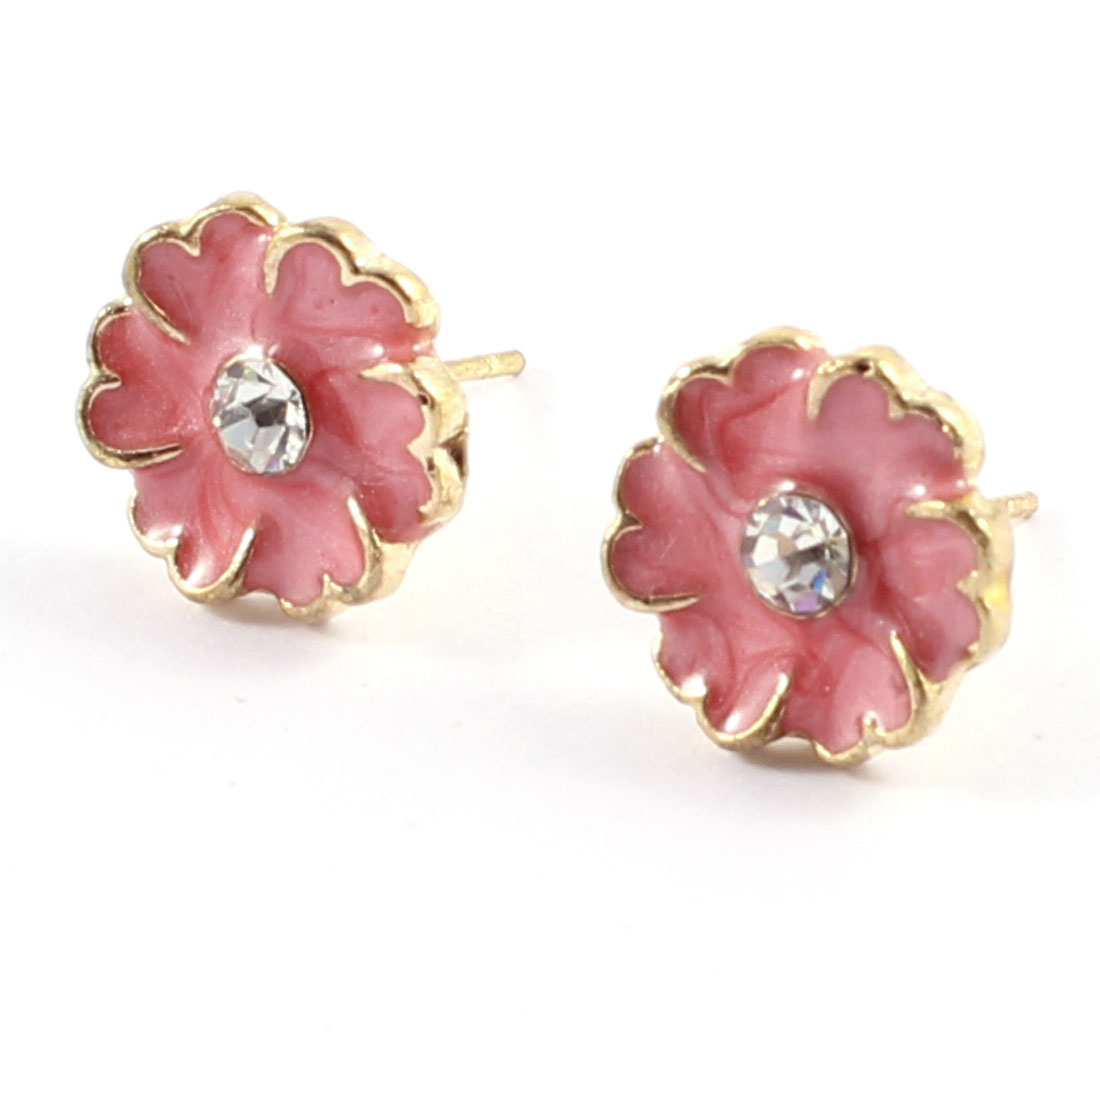 Women Rhinestone Pink Flower Pierced Ear Stud Earrings Eardrops Pair